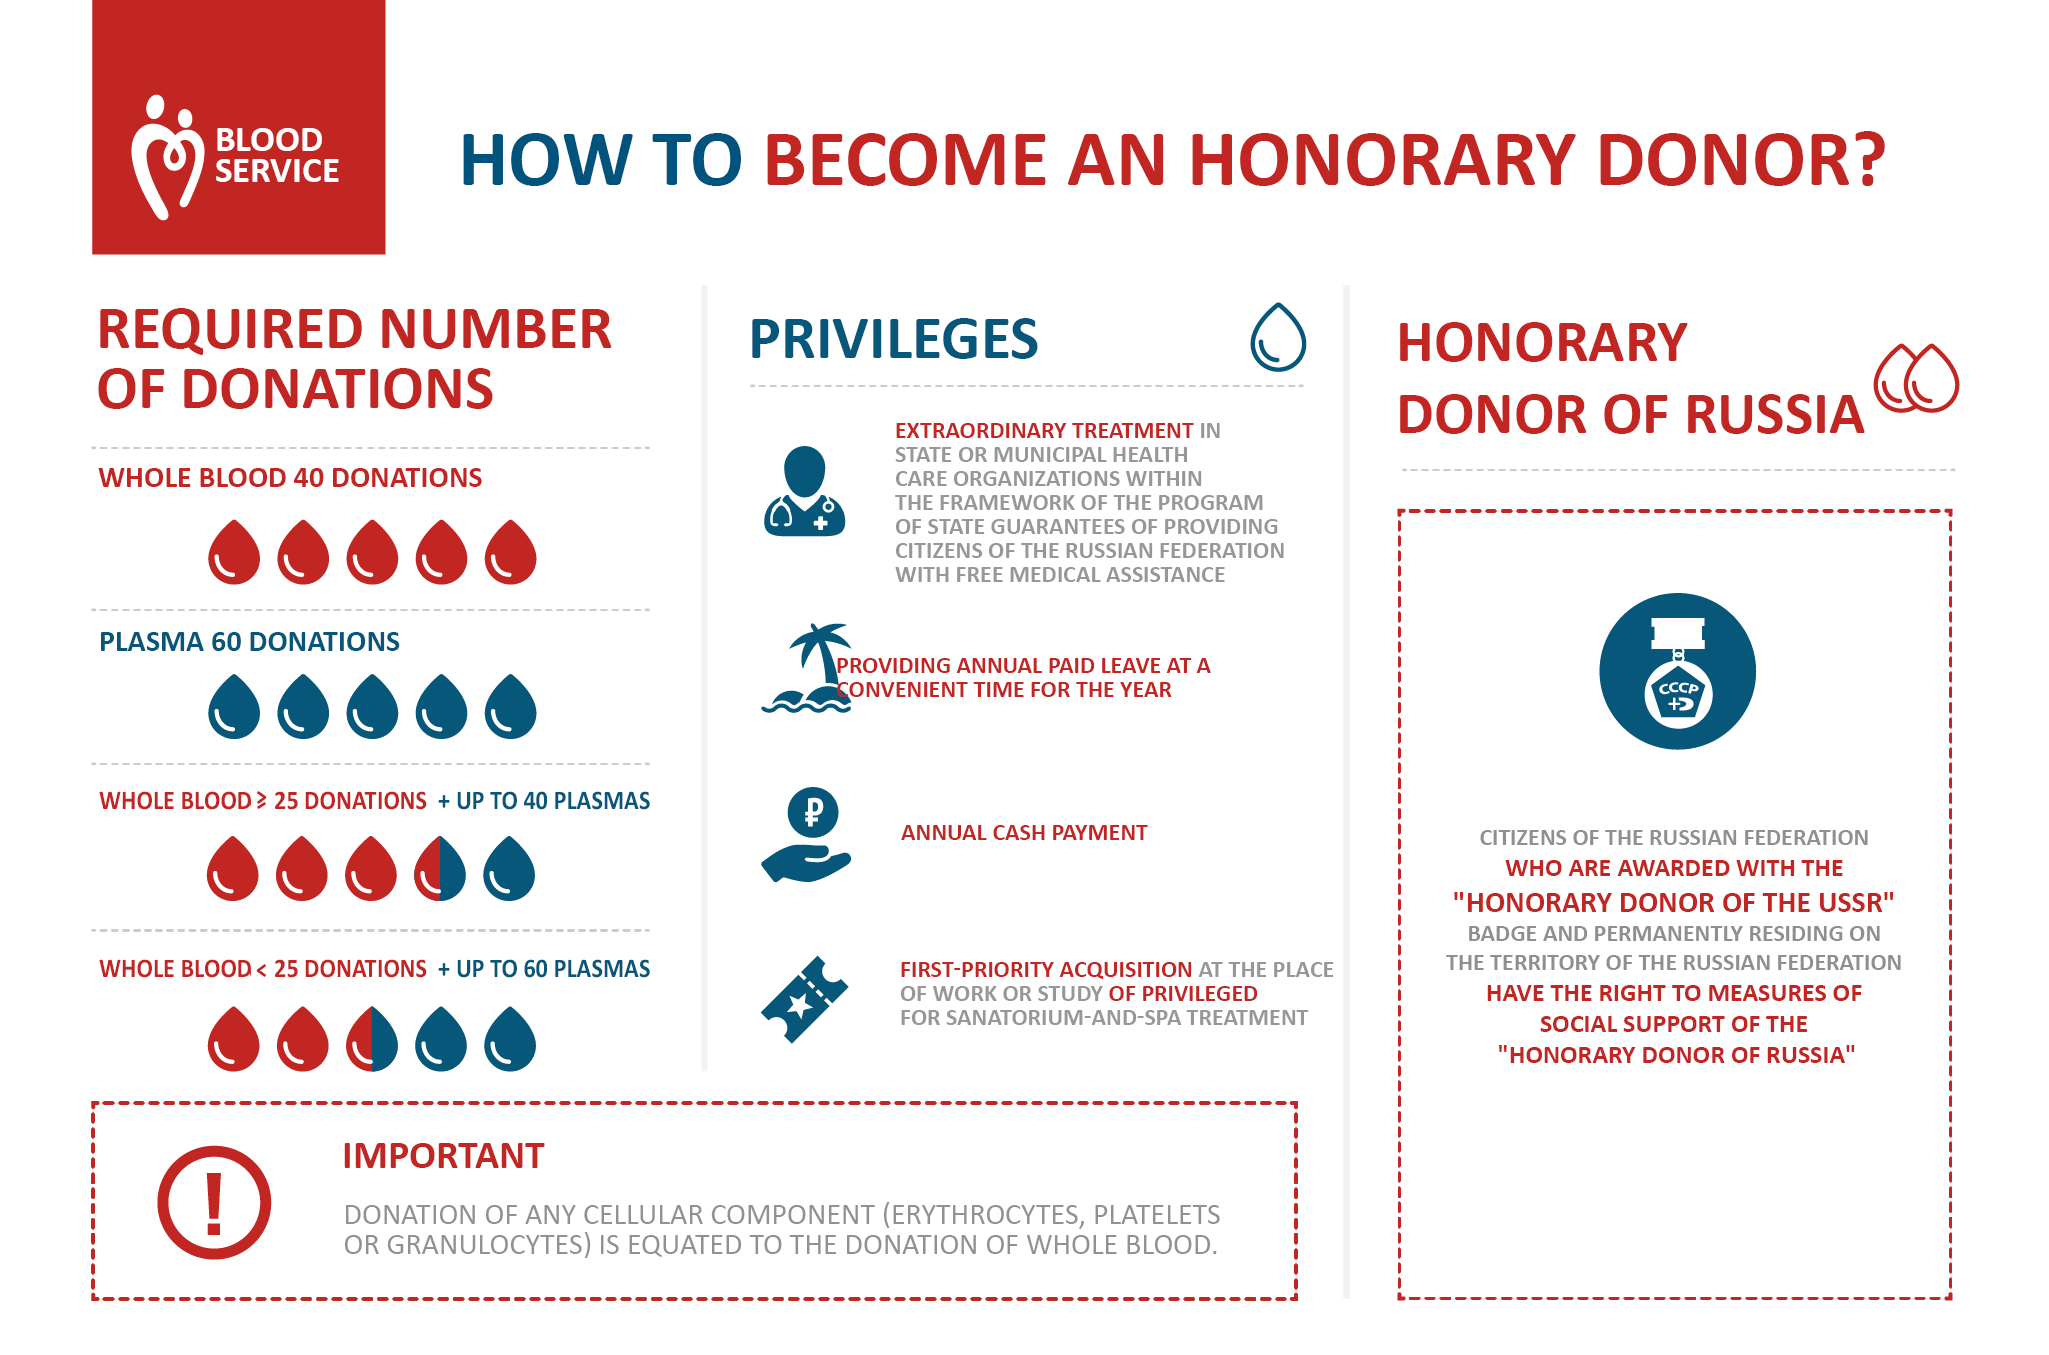 How to become an Honorary Donor of Russia?